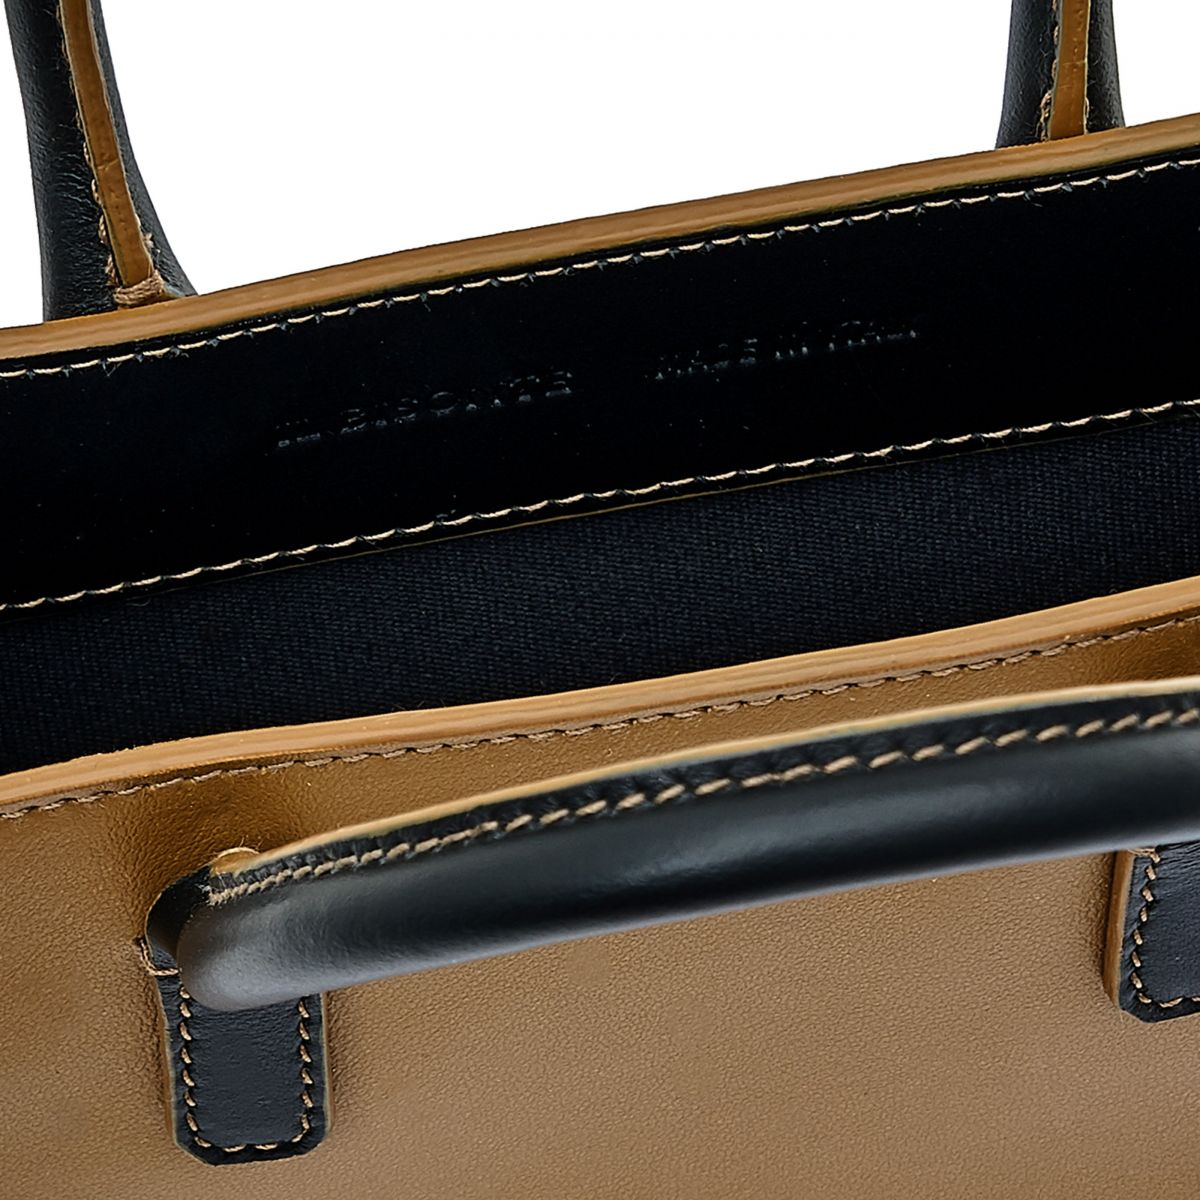 Sole Mini - Women's Handbag in Calf Leather color Black/Olive - Fifty On line BHA009 | Details